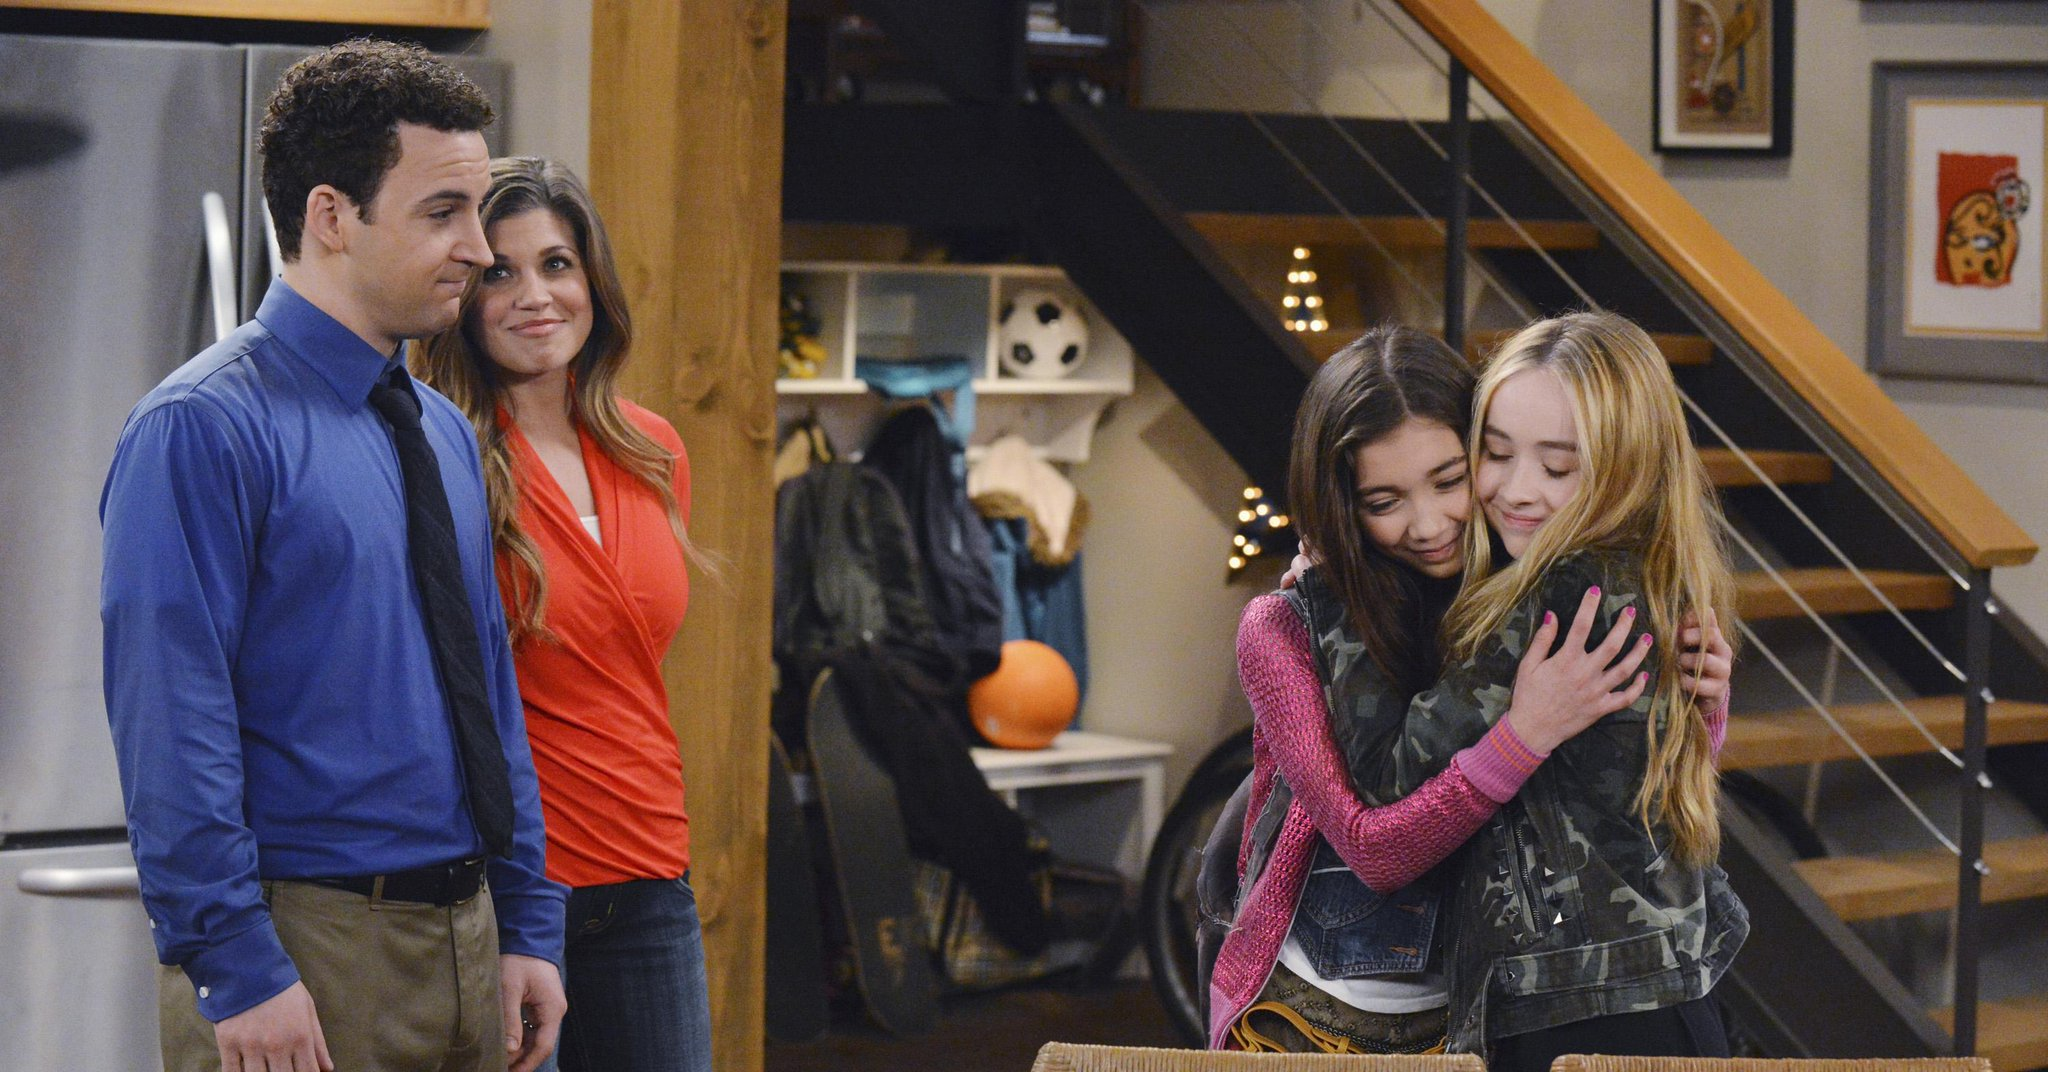 'Girl Meets World' Will Shed Light On Asperger's Syndrome: http://t.co/RGwRo5W0U2 http://t.co/Nq8WATpV8H